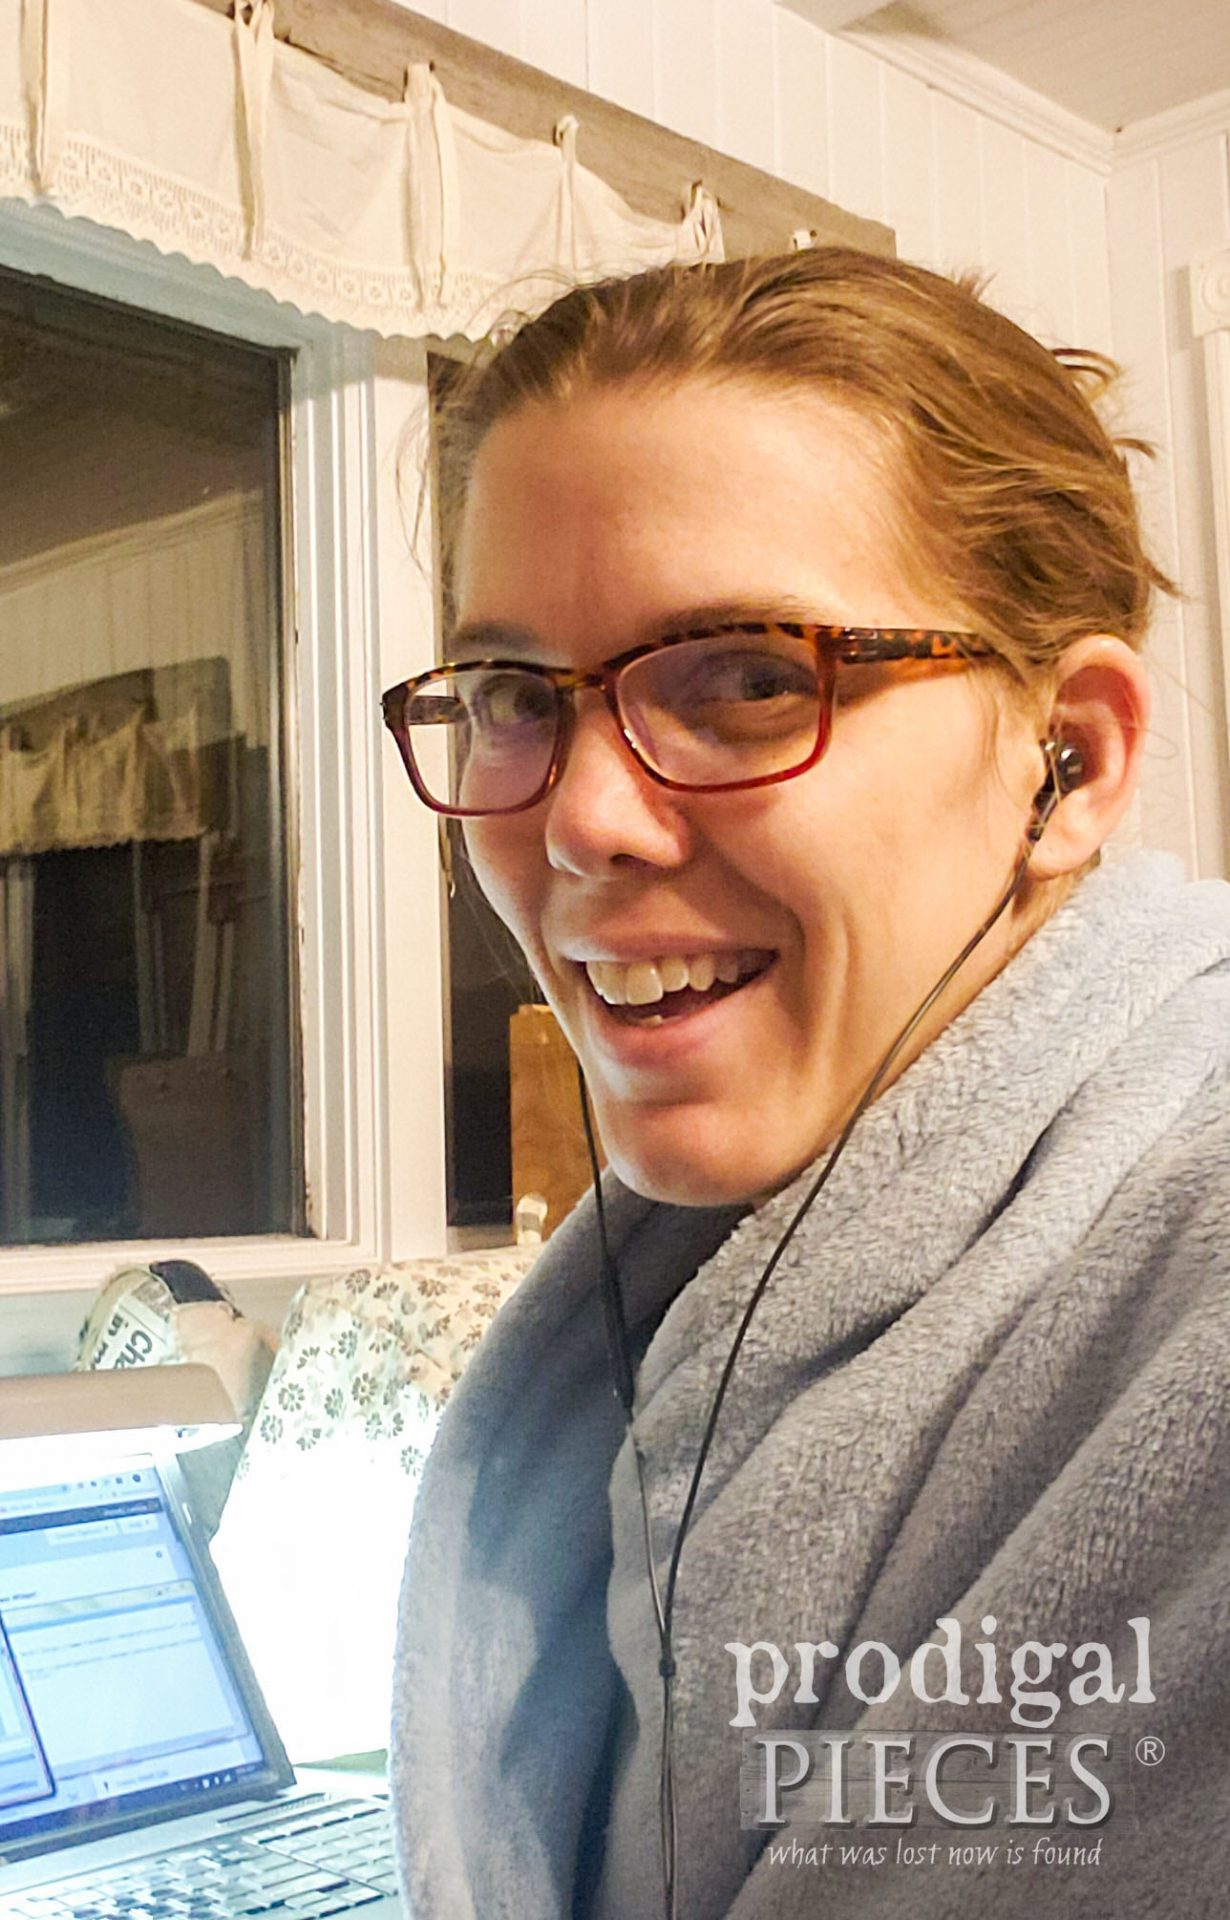 Larissa of Prodigal Pieces smile at work in the morning | prodigalpieces.com